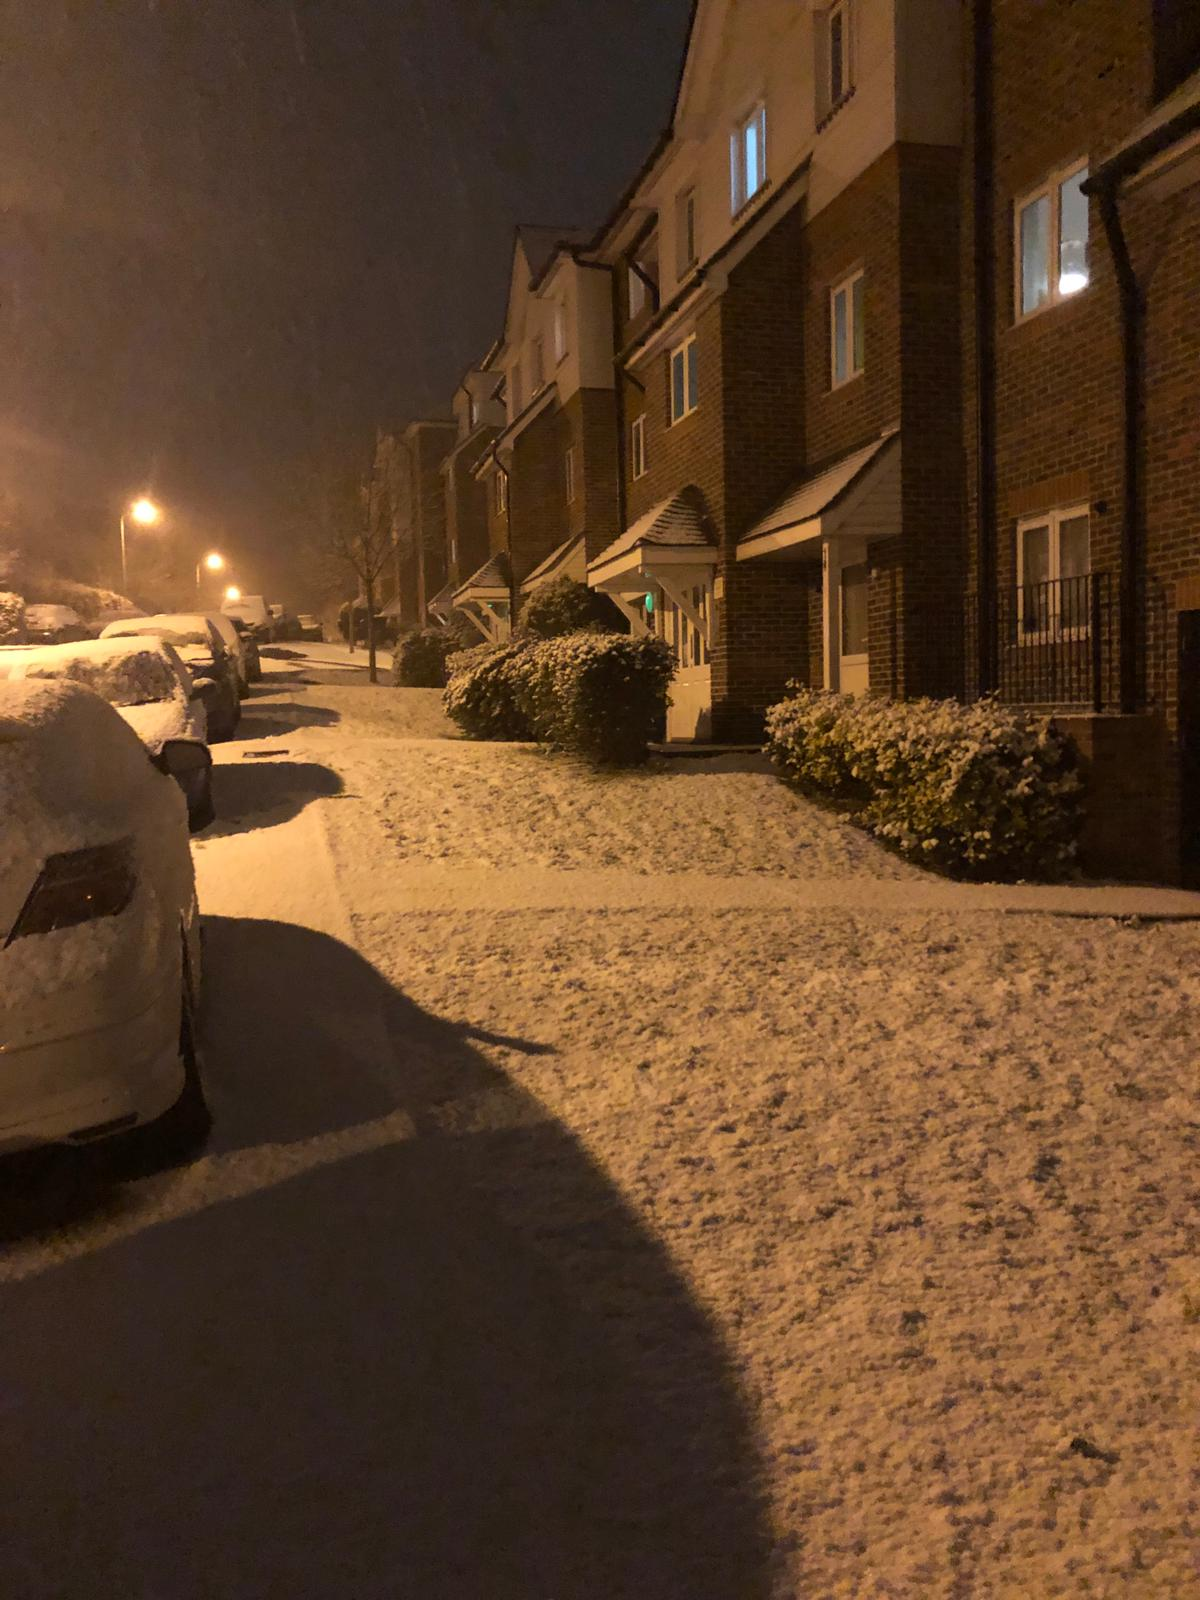 SCHOOLS SHUT: Full list of today's closures after heavy snow